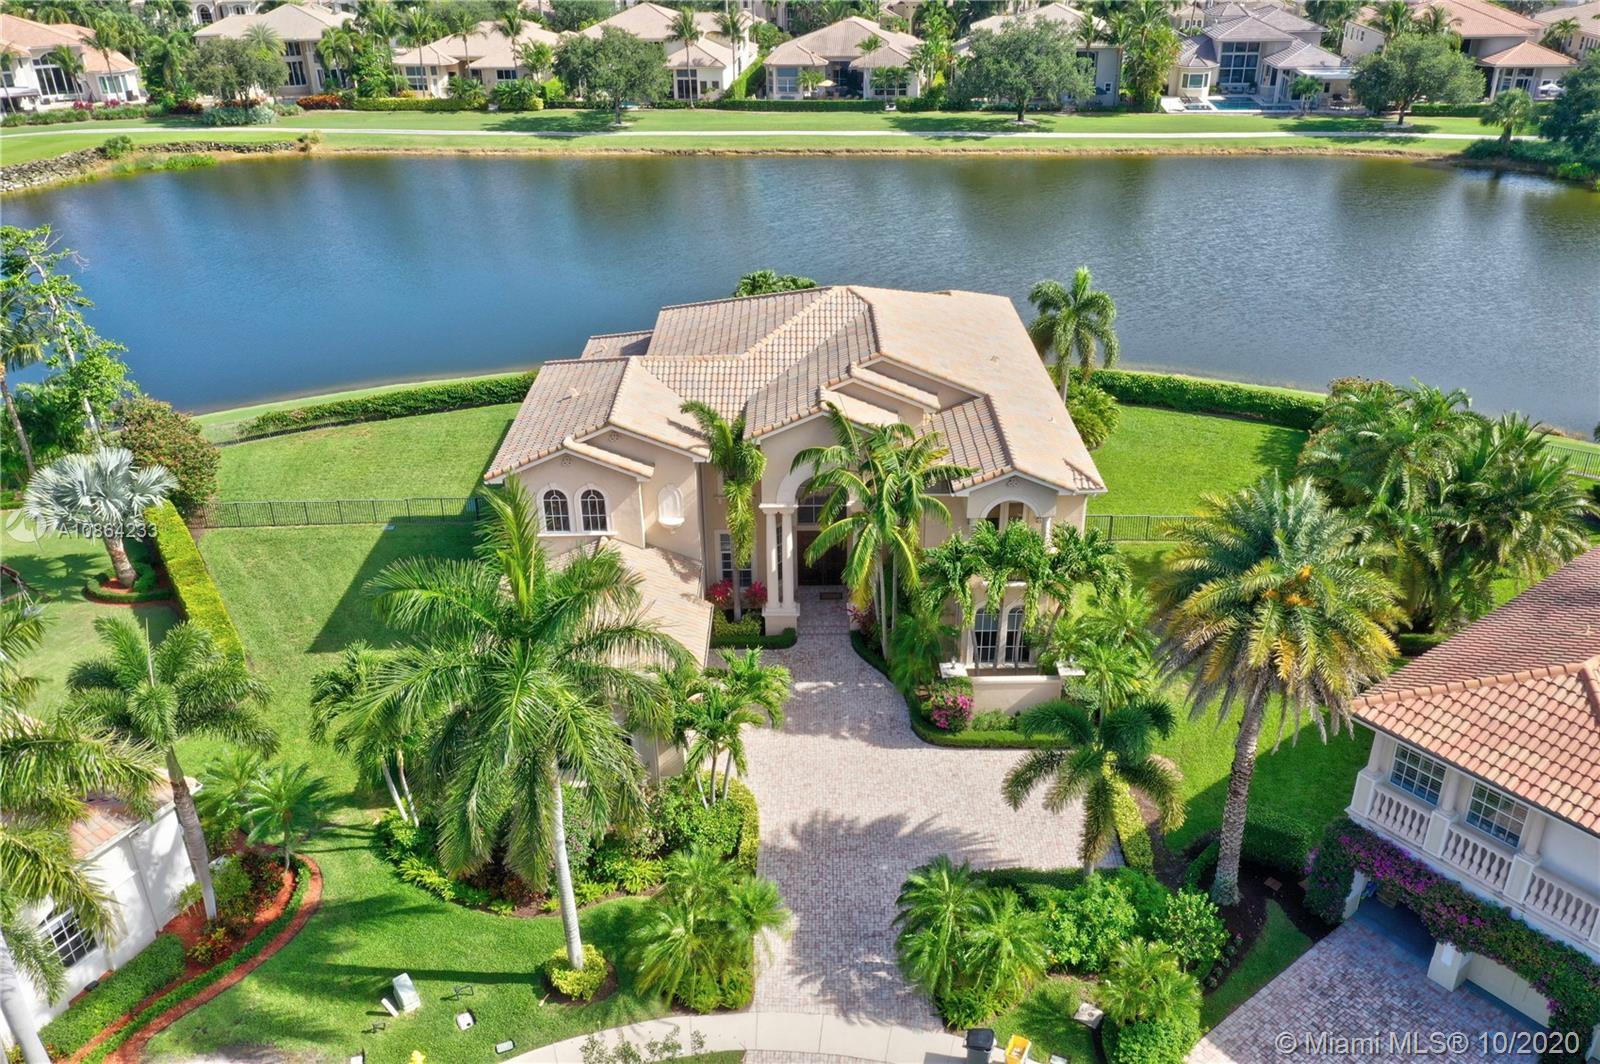 Live luxuriously in this estate home with sweeping views of the lake, golf course and resort style p